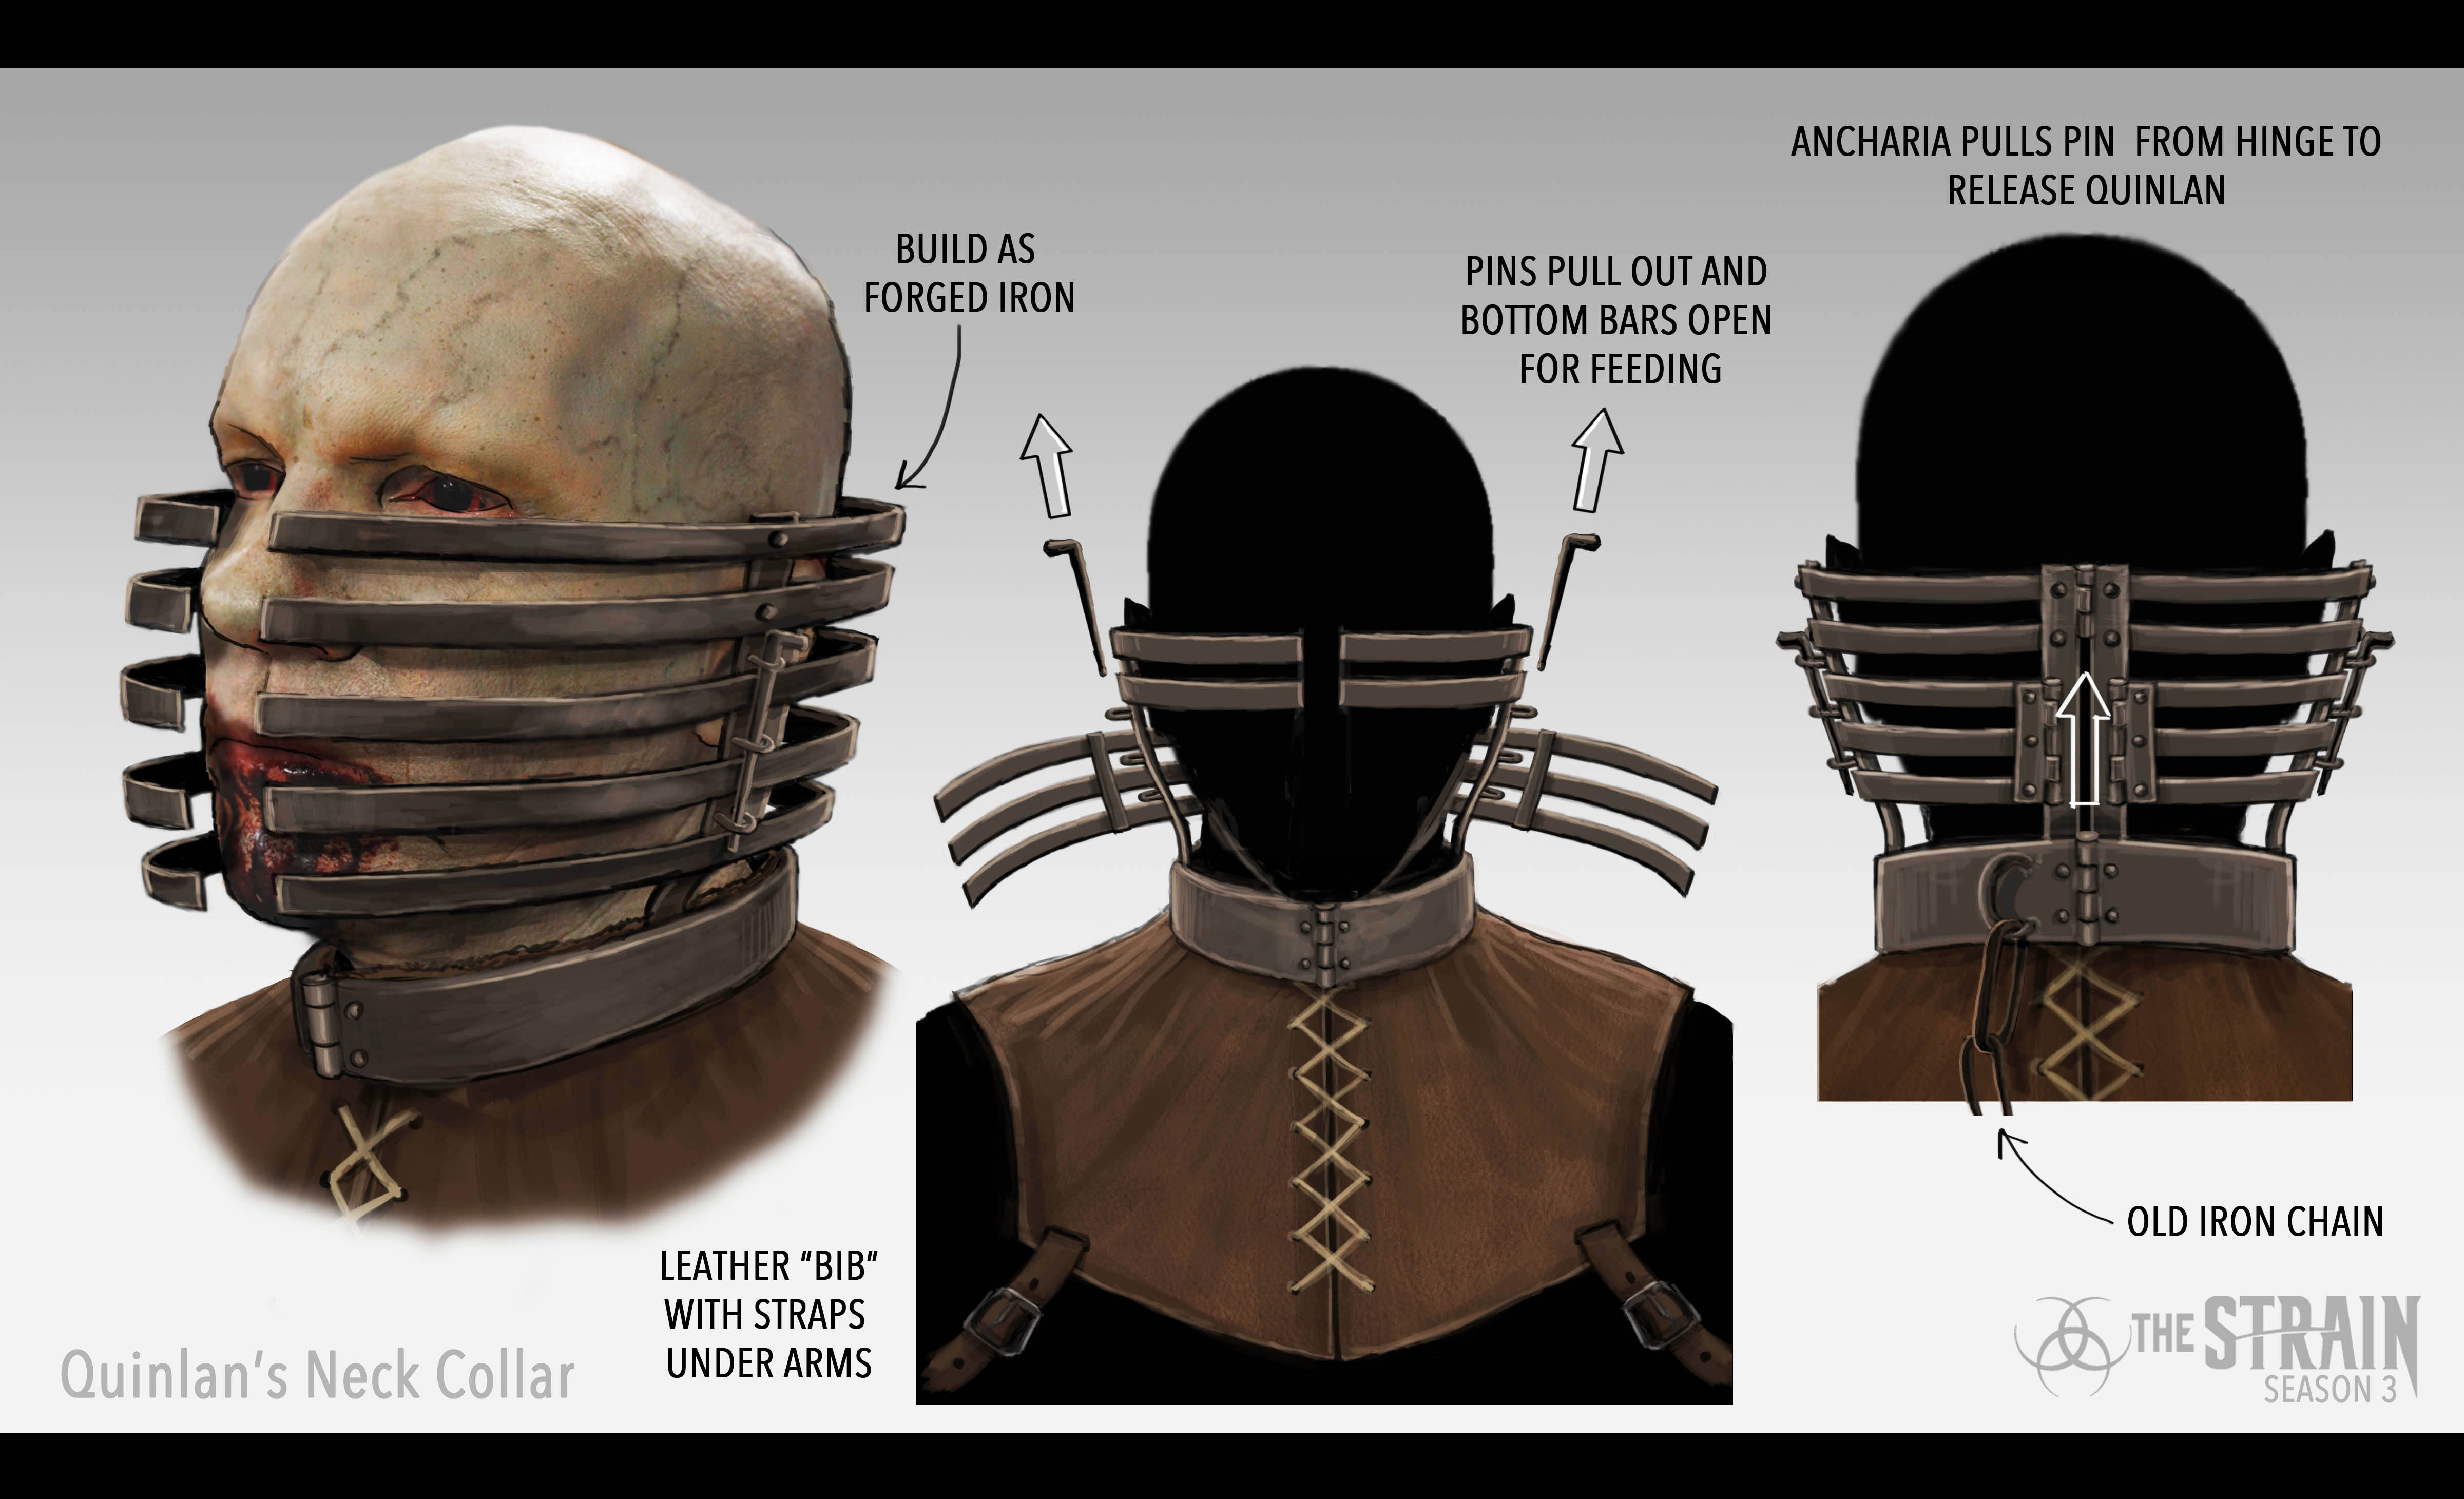 Quinlan's Neck Collar_Leather Bib